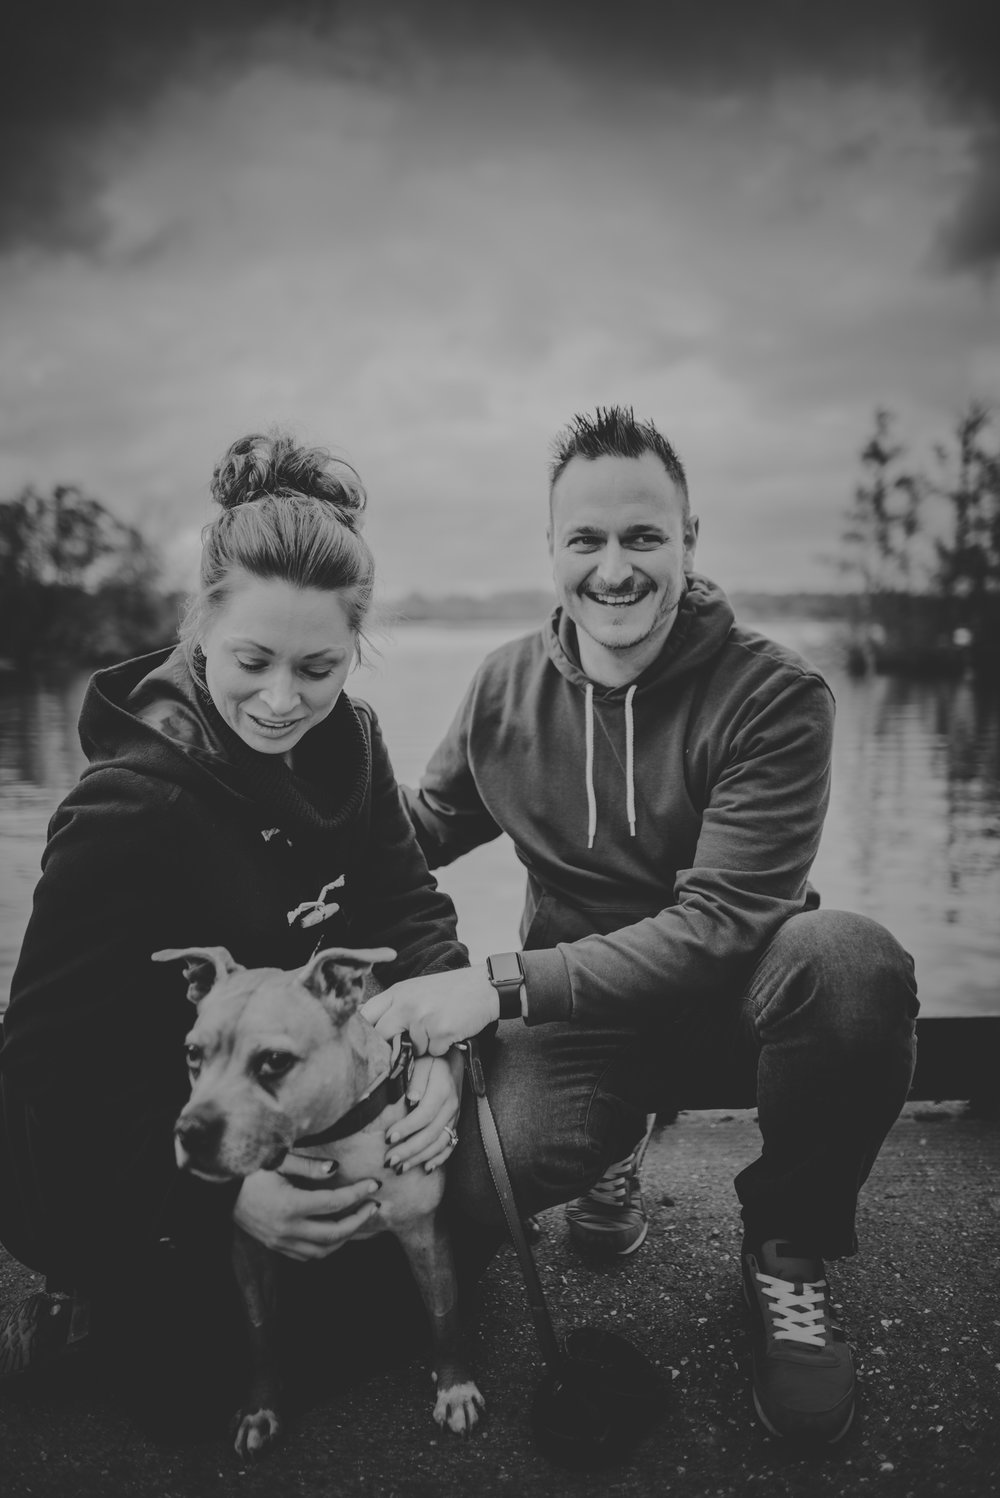 Hannah-and-Sam-Engagement-Sesion-in-Fleet-Pond-Hampshire-Manu-Mendoza-Wedding-Photography-005.jpg